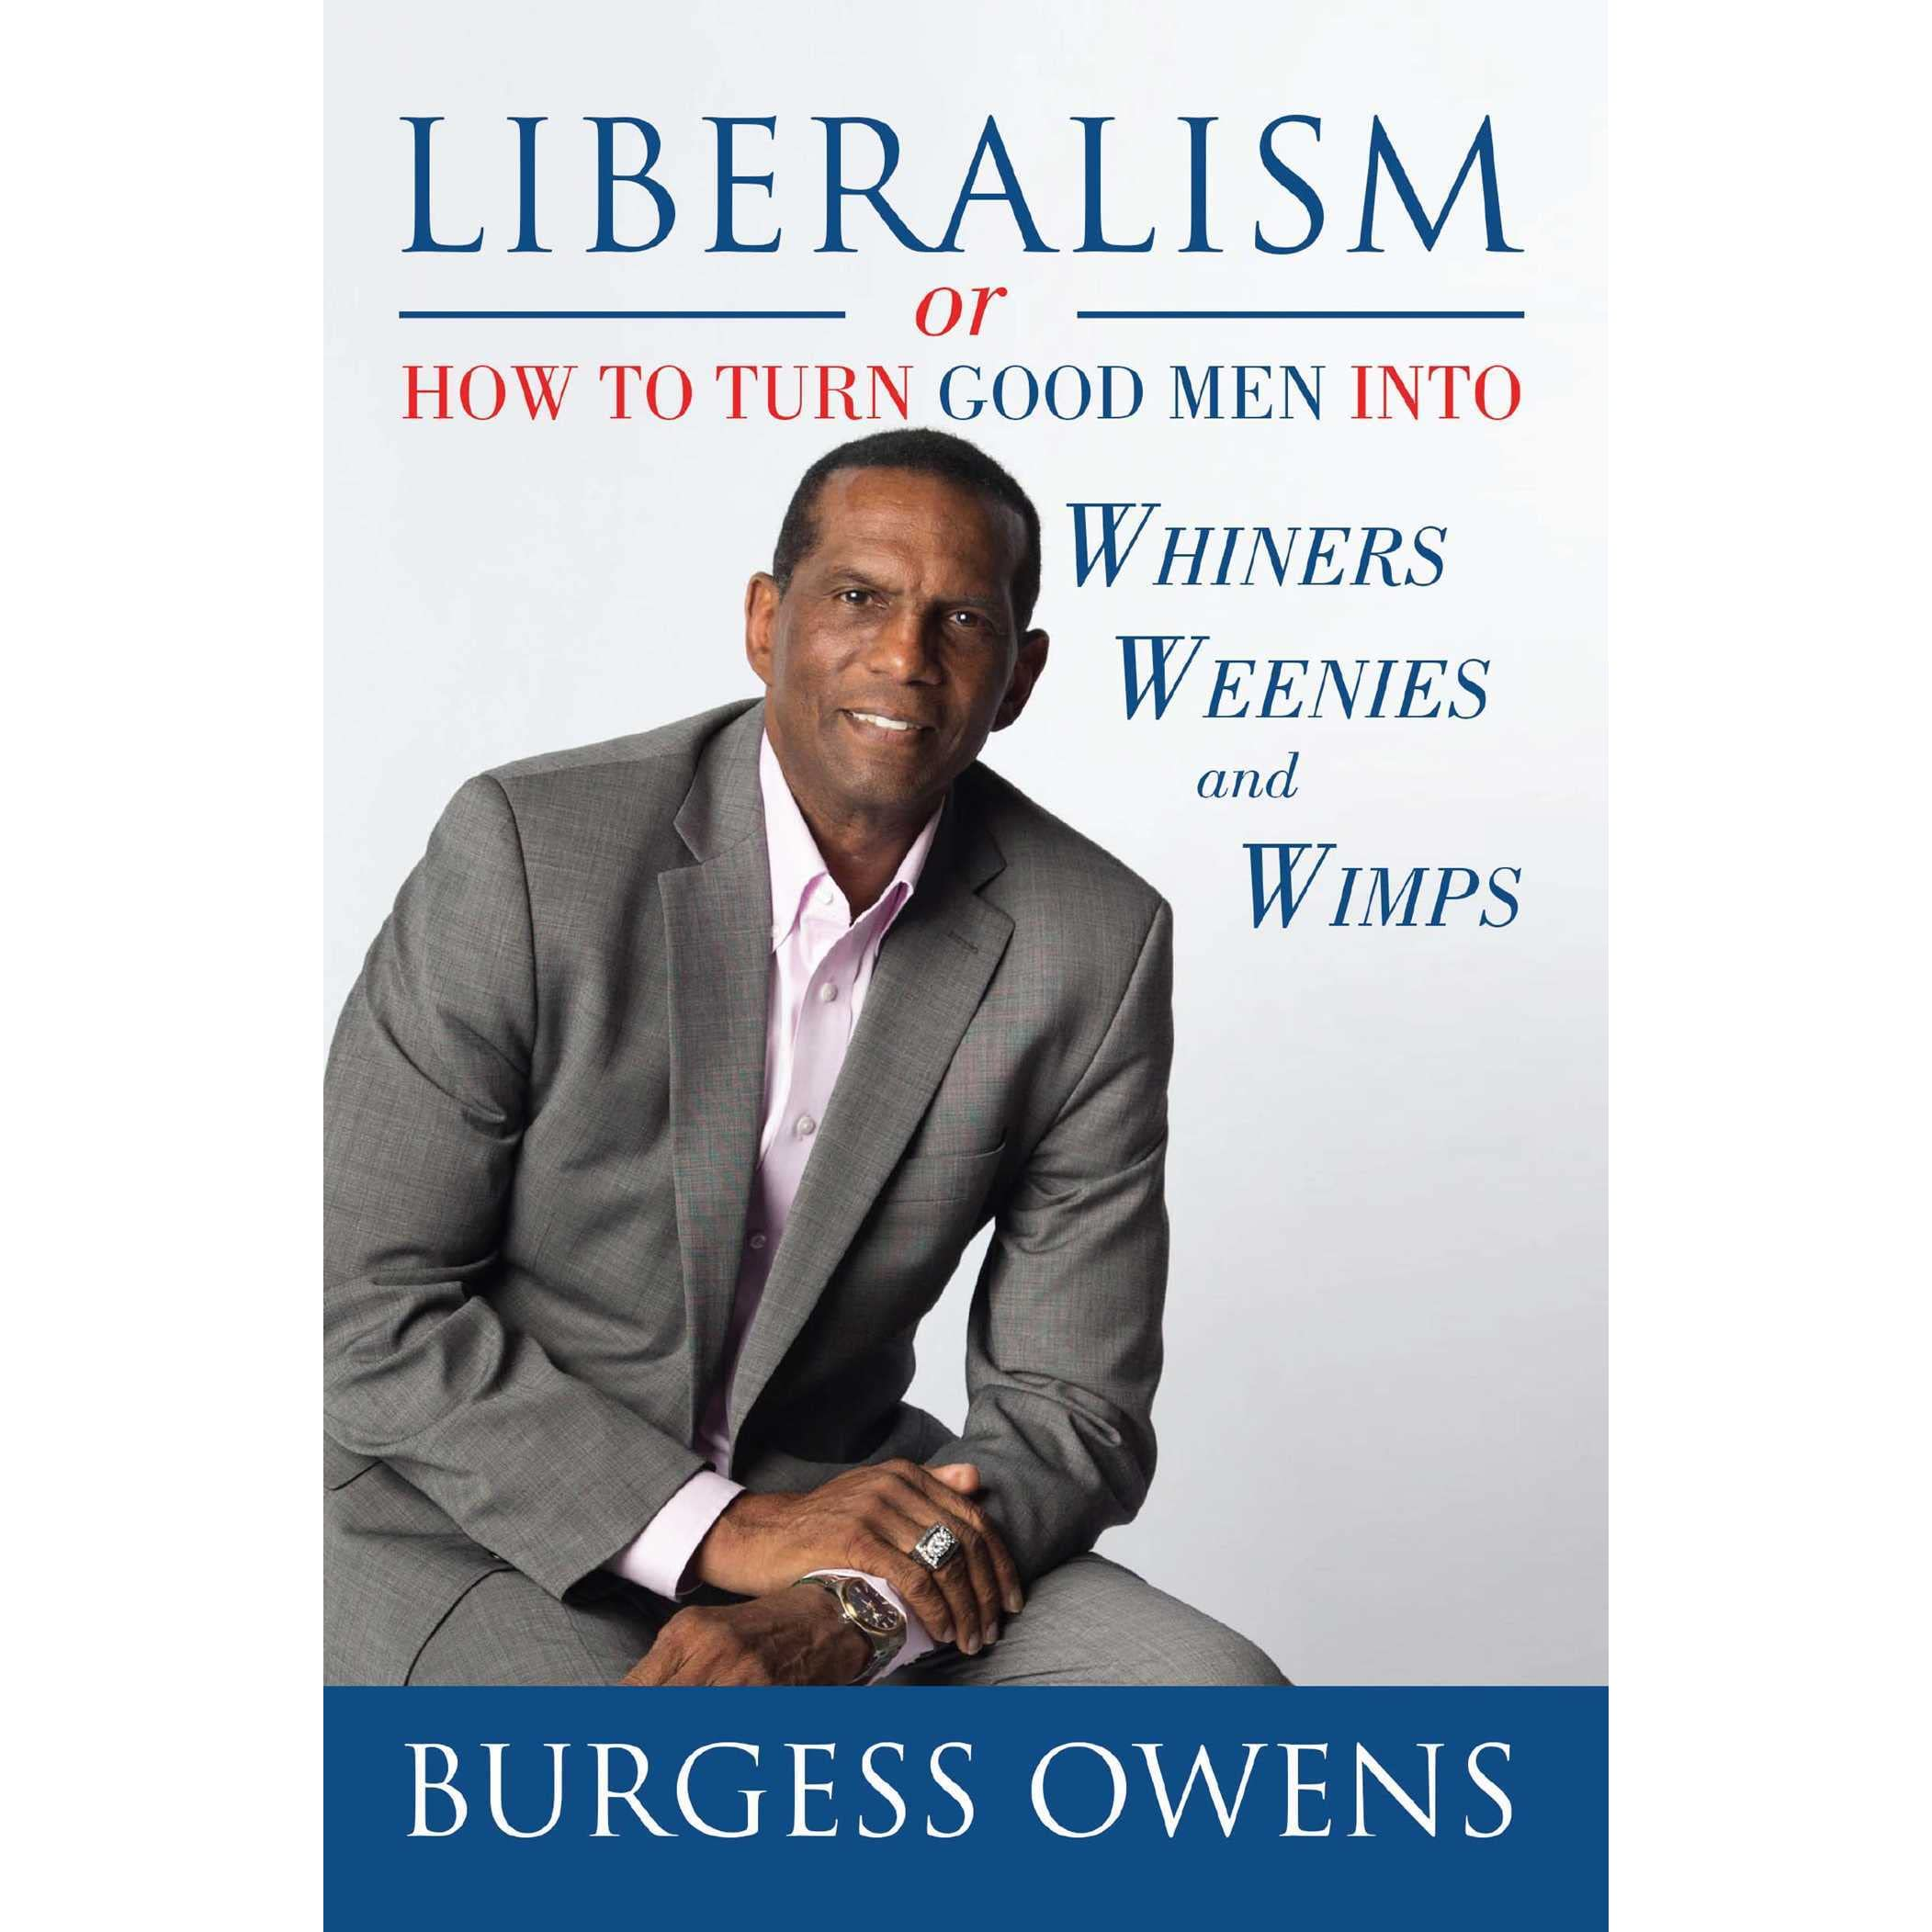 liberalism author burgess owens - HD 2103×2103